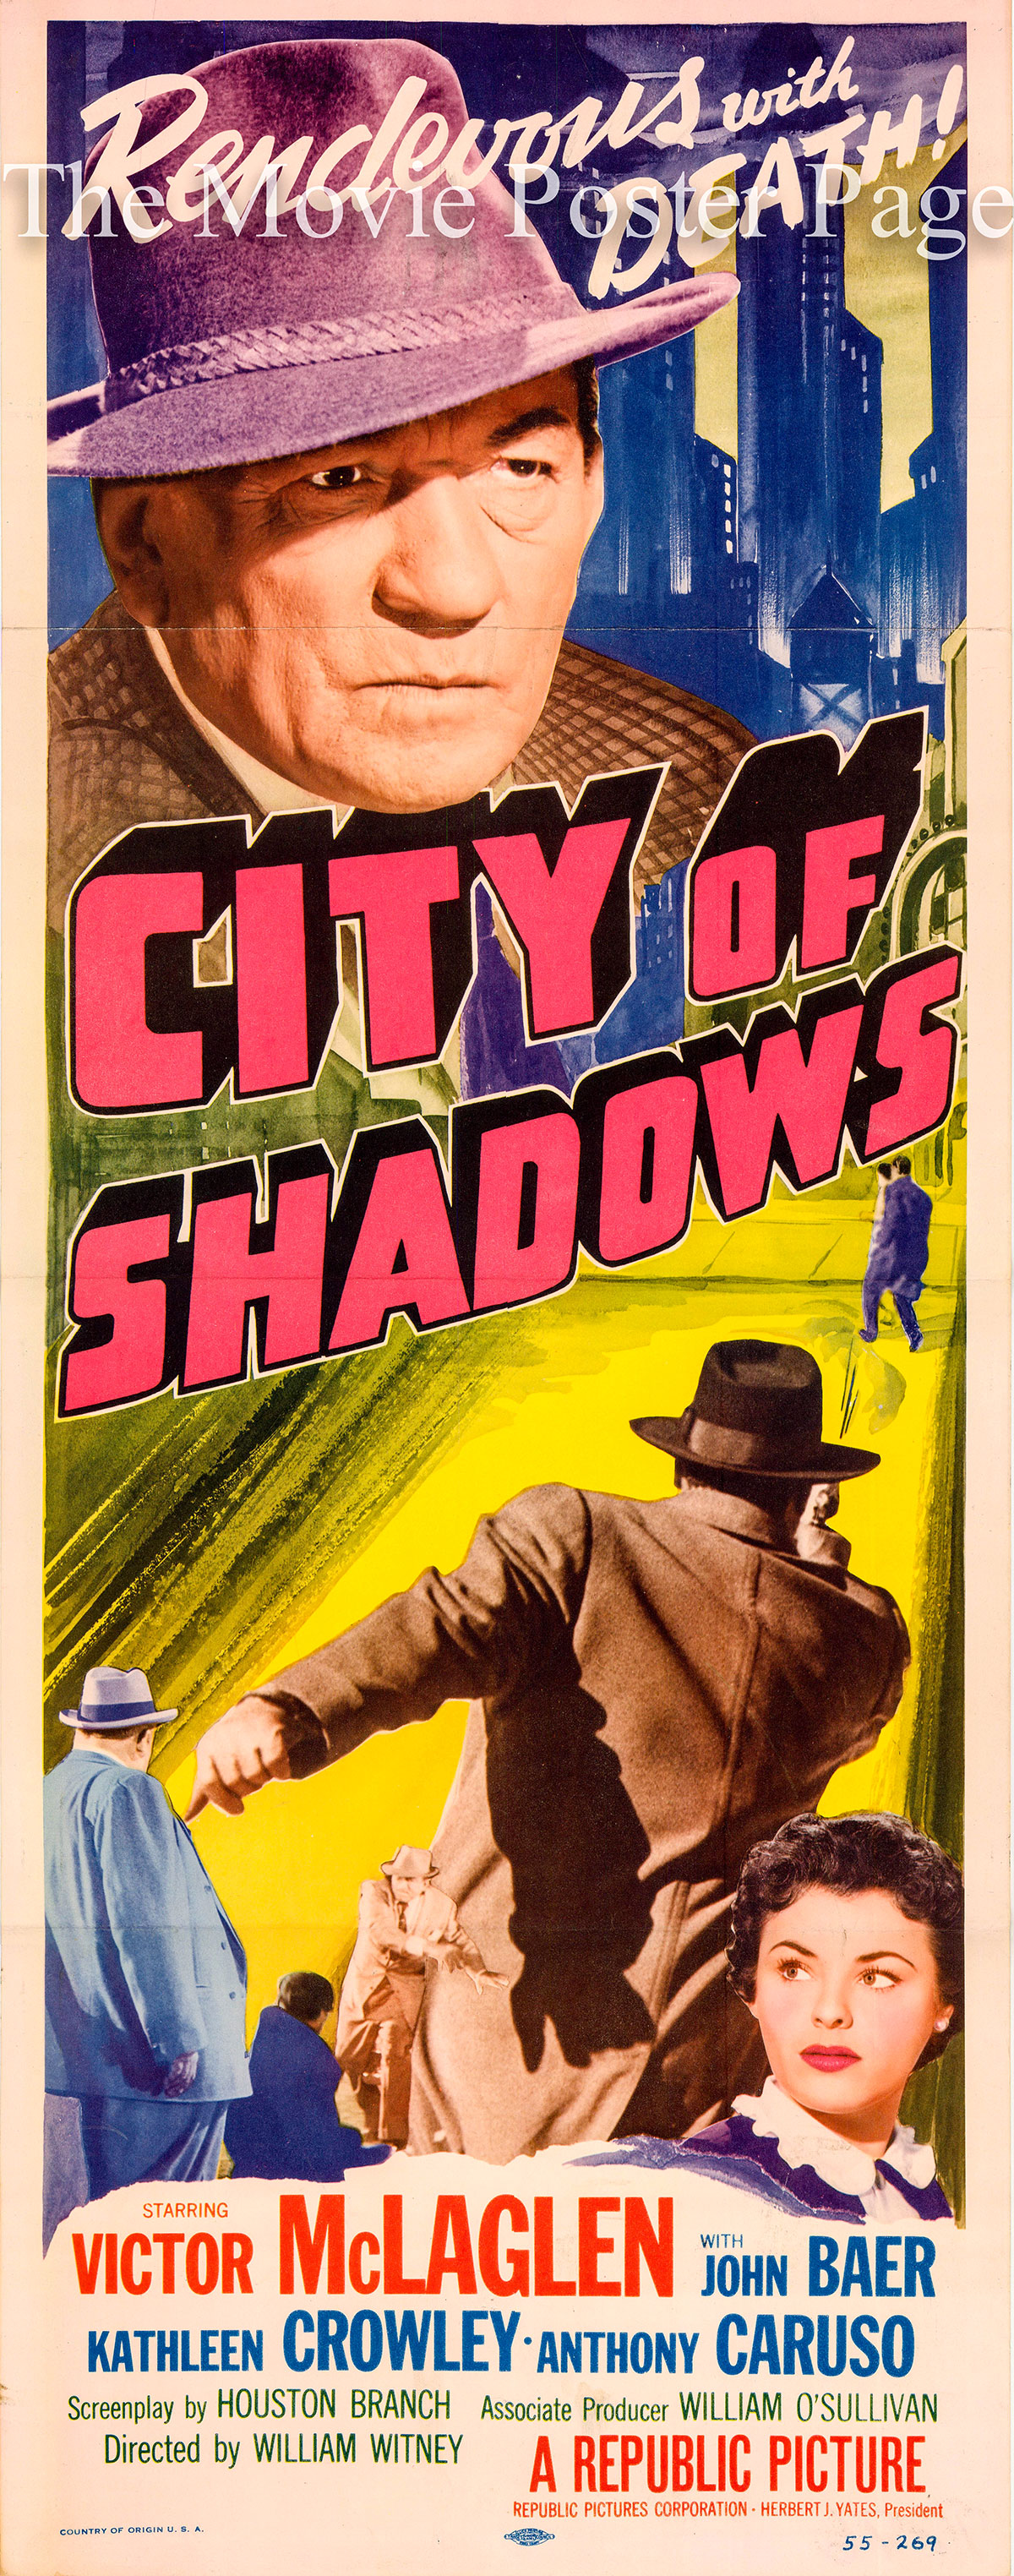 Pictured is the US insert poster for the 1955 William Witney film City of Shadows, starring Victor McLaglen